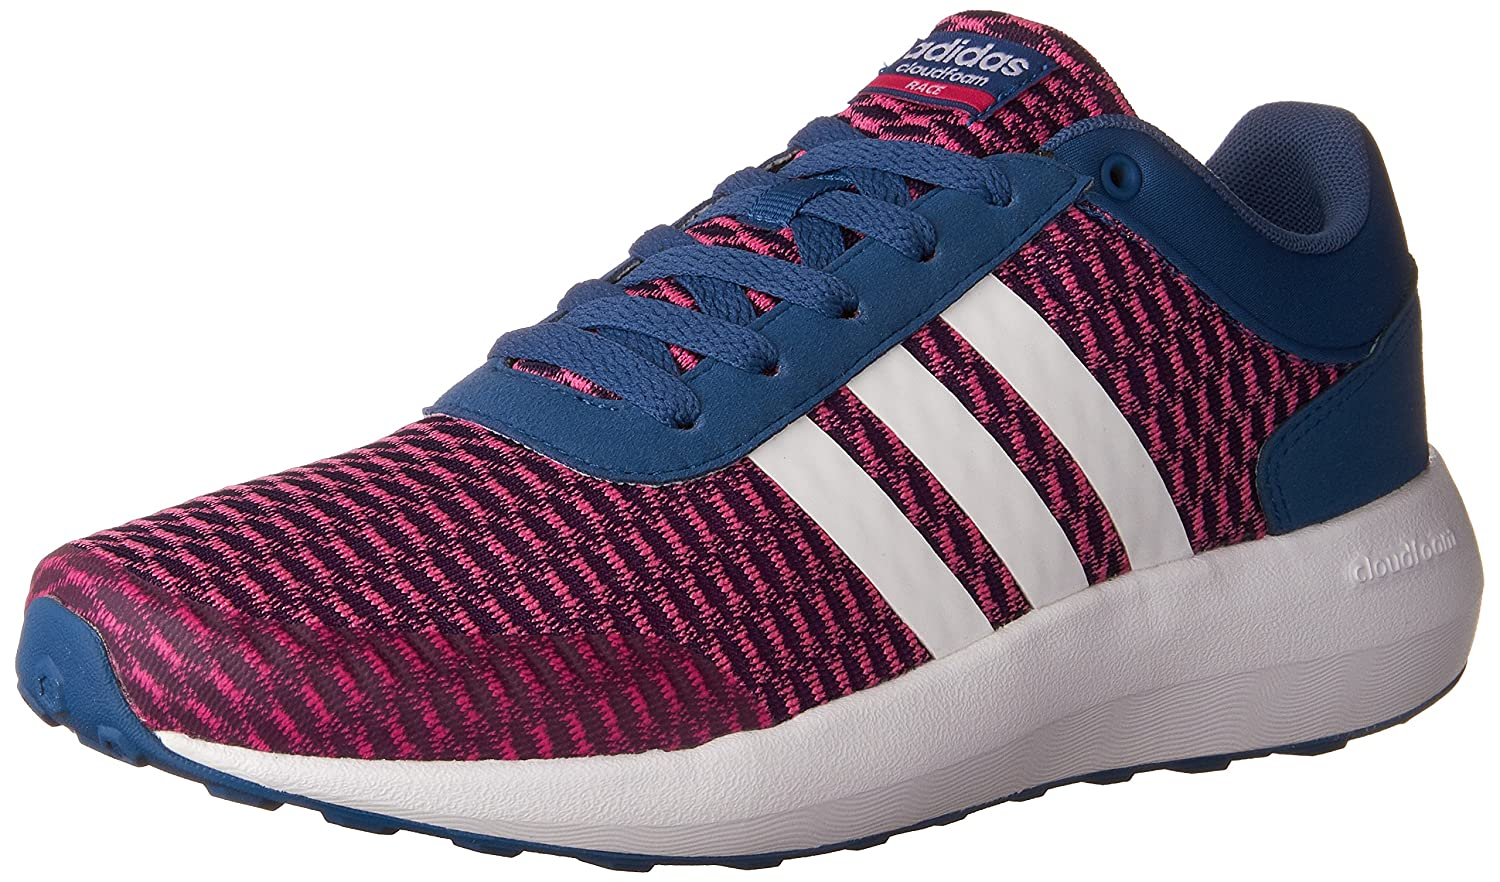 uk availability 43ae7 b85cd adidas Womens Cloudfoam Race Sneakers Adidas Amazon.ca Shoes  Handbags